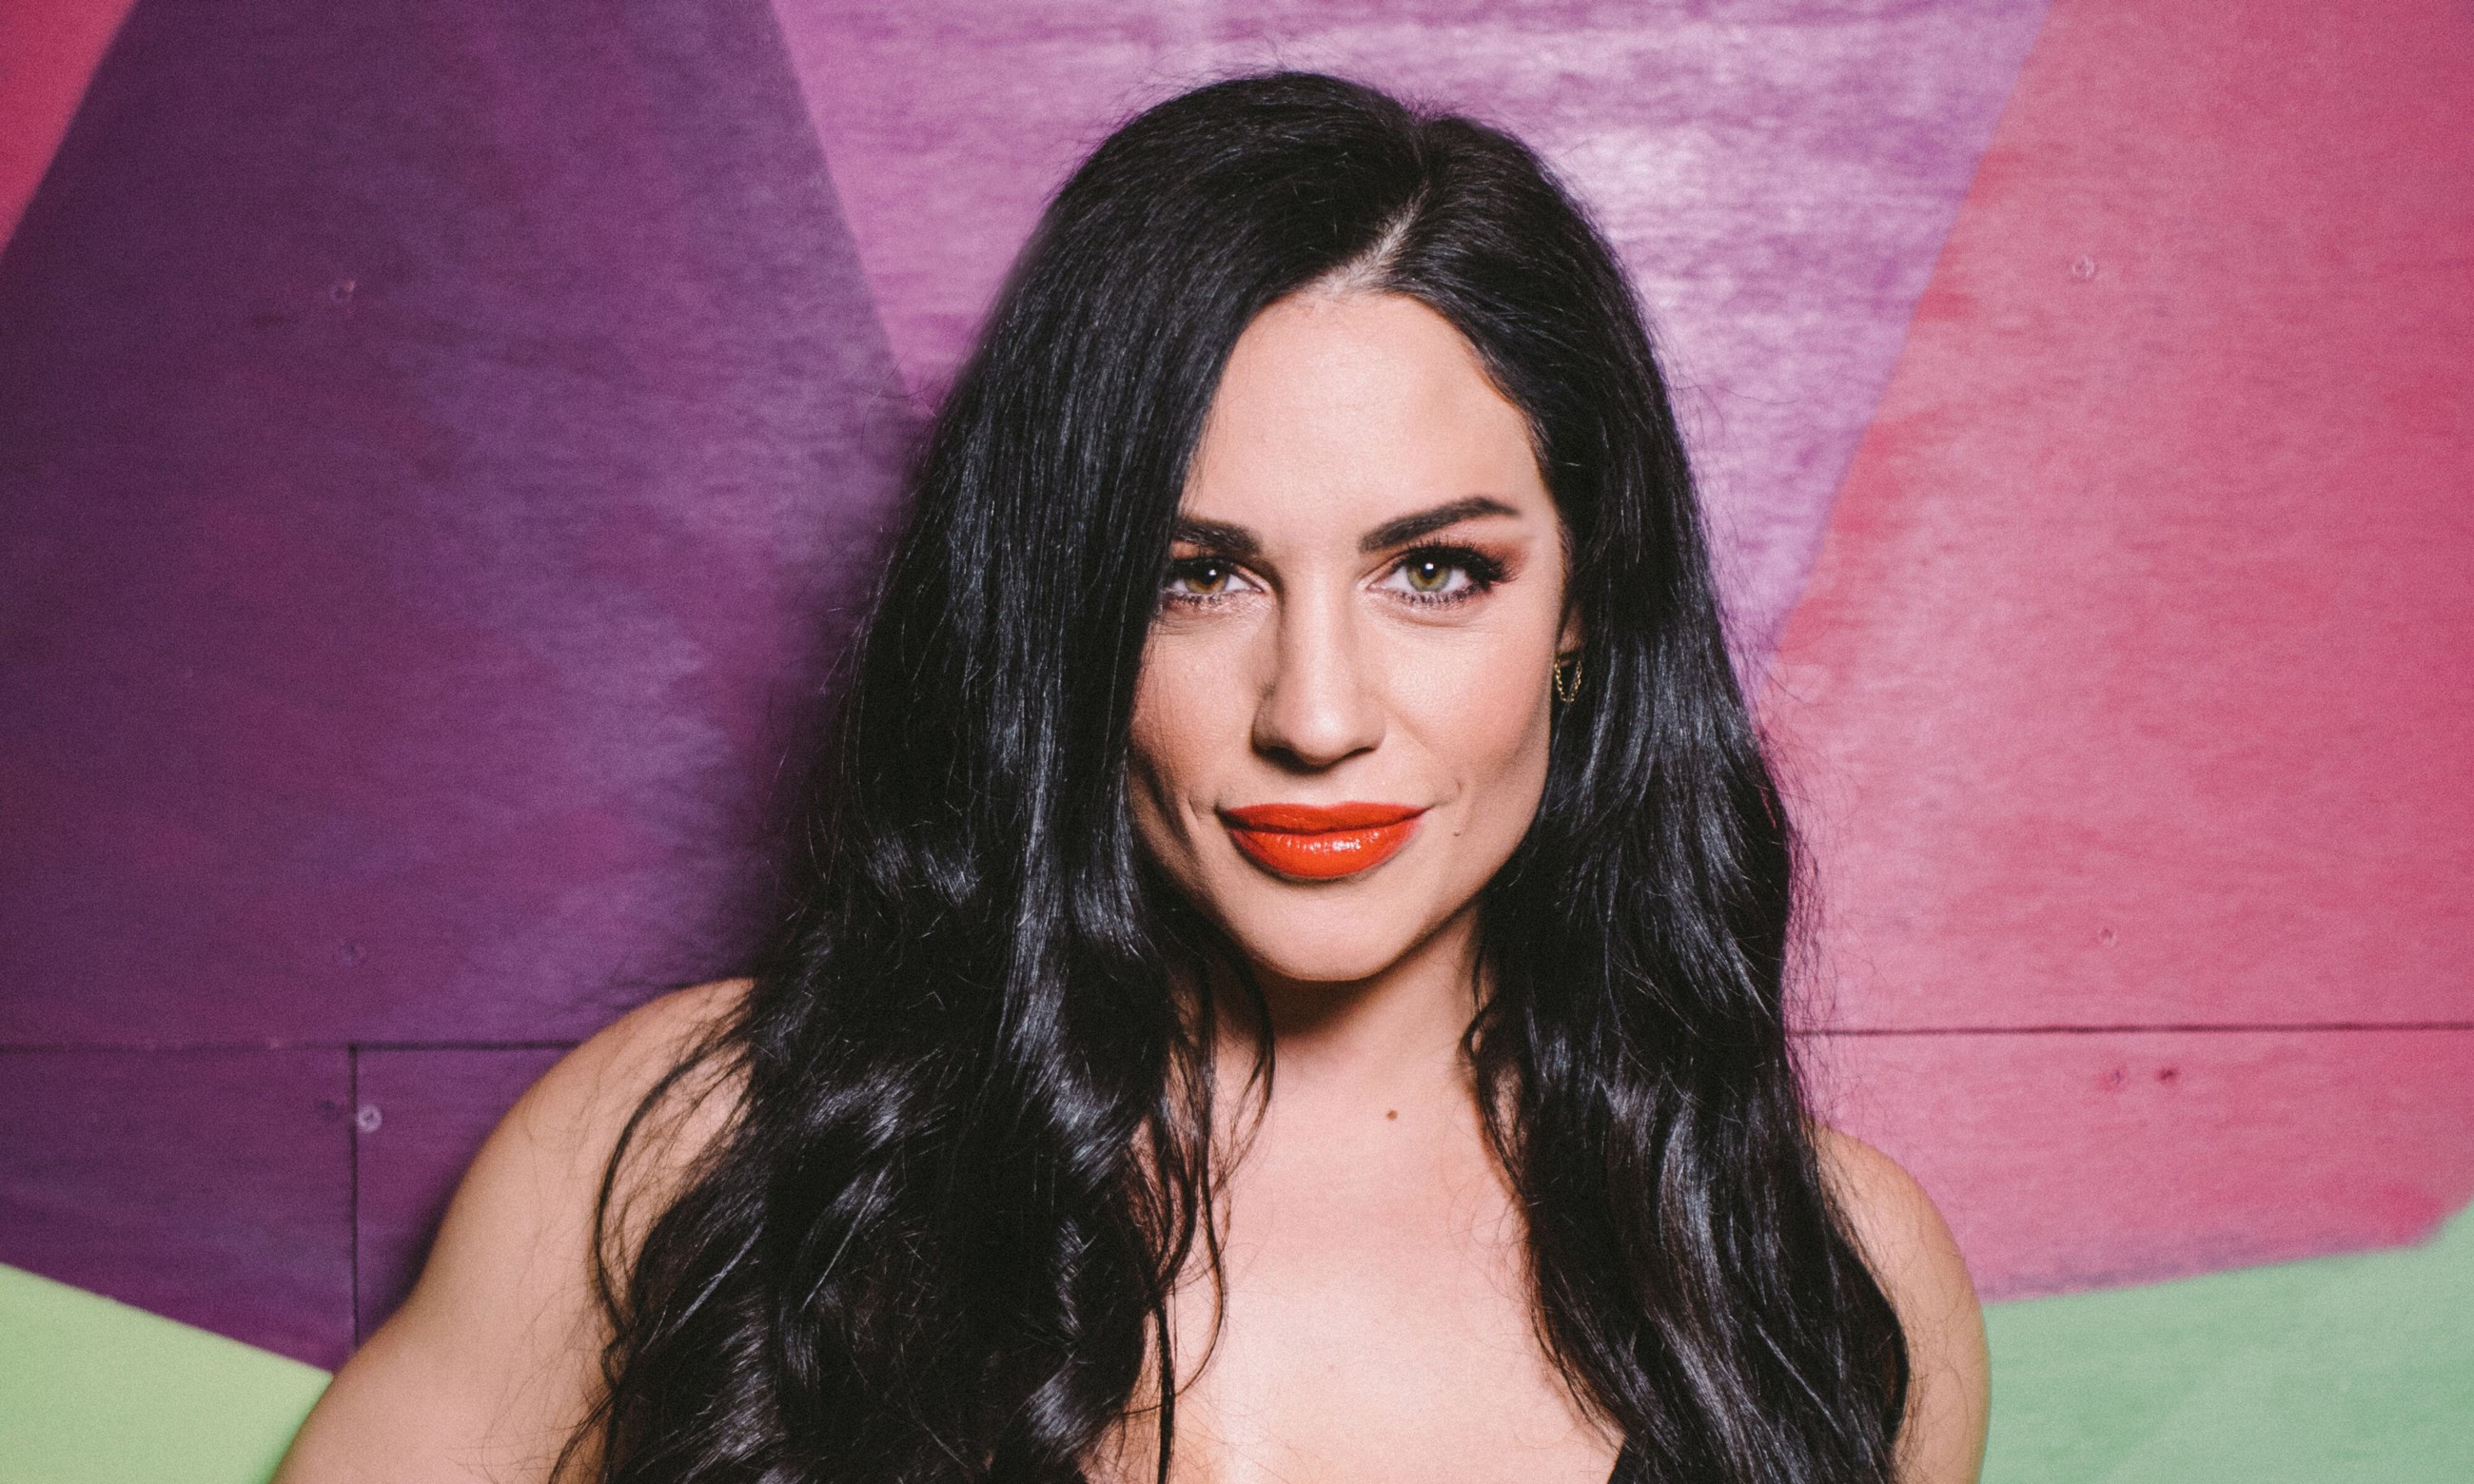 Learn How To Say No With With Wwe Diva Celeste Bonin